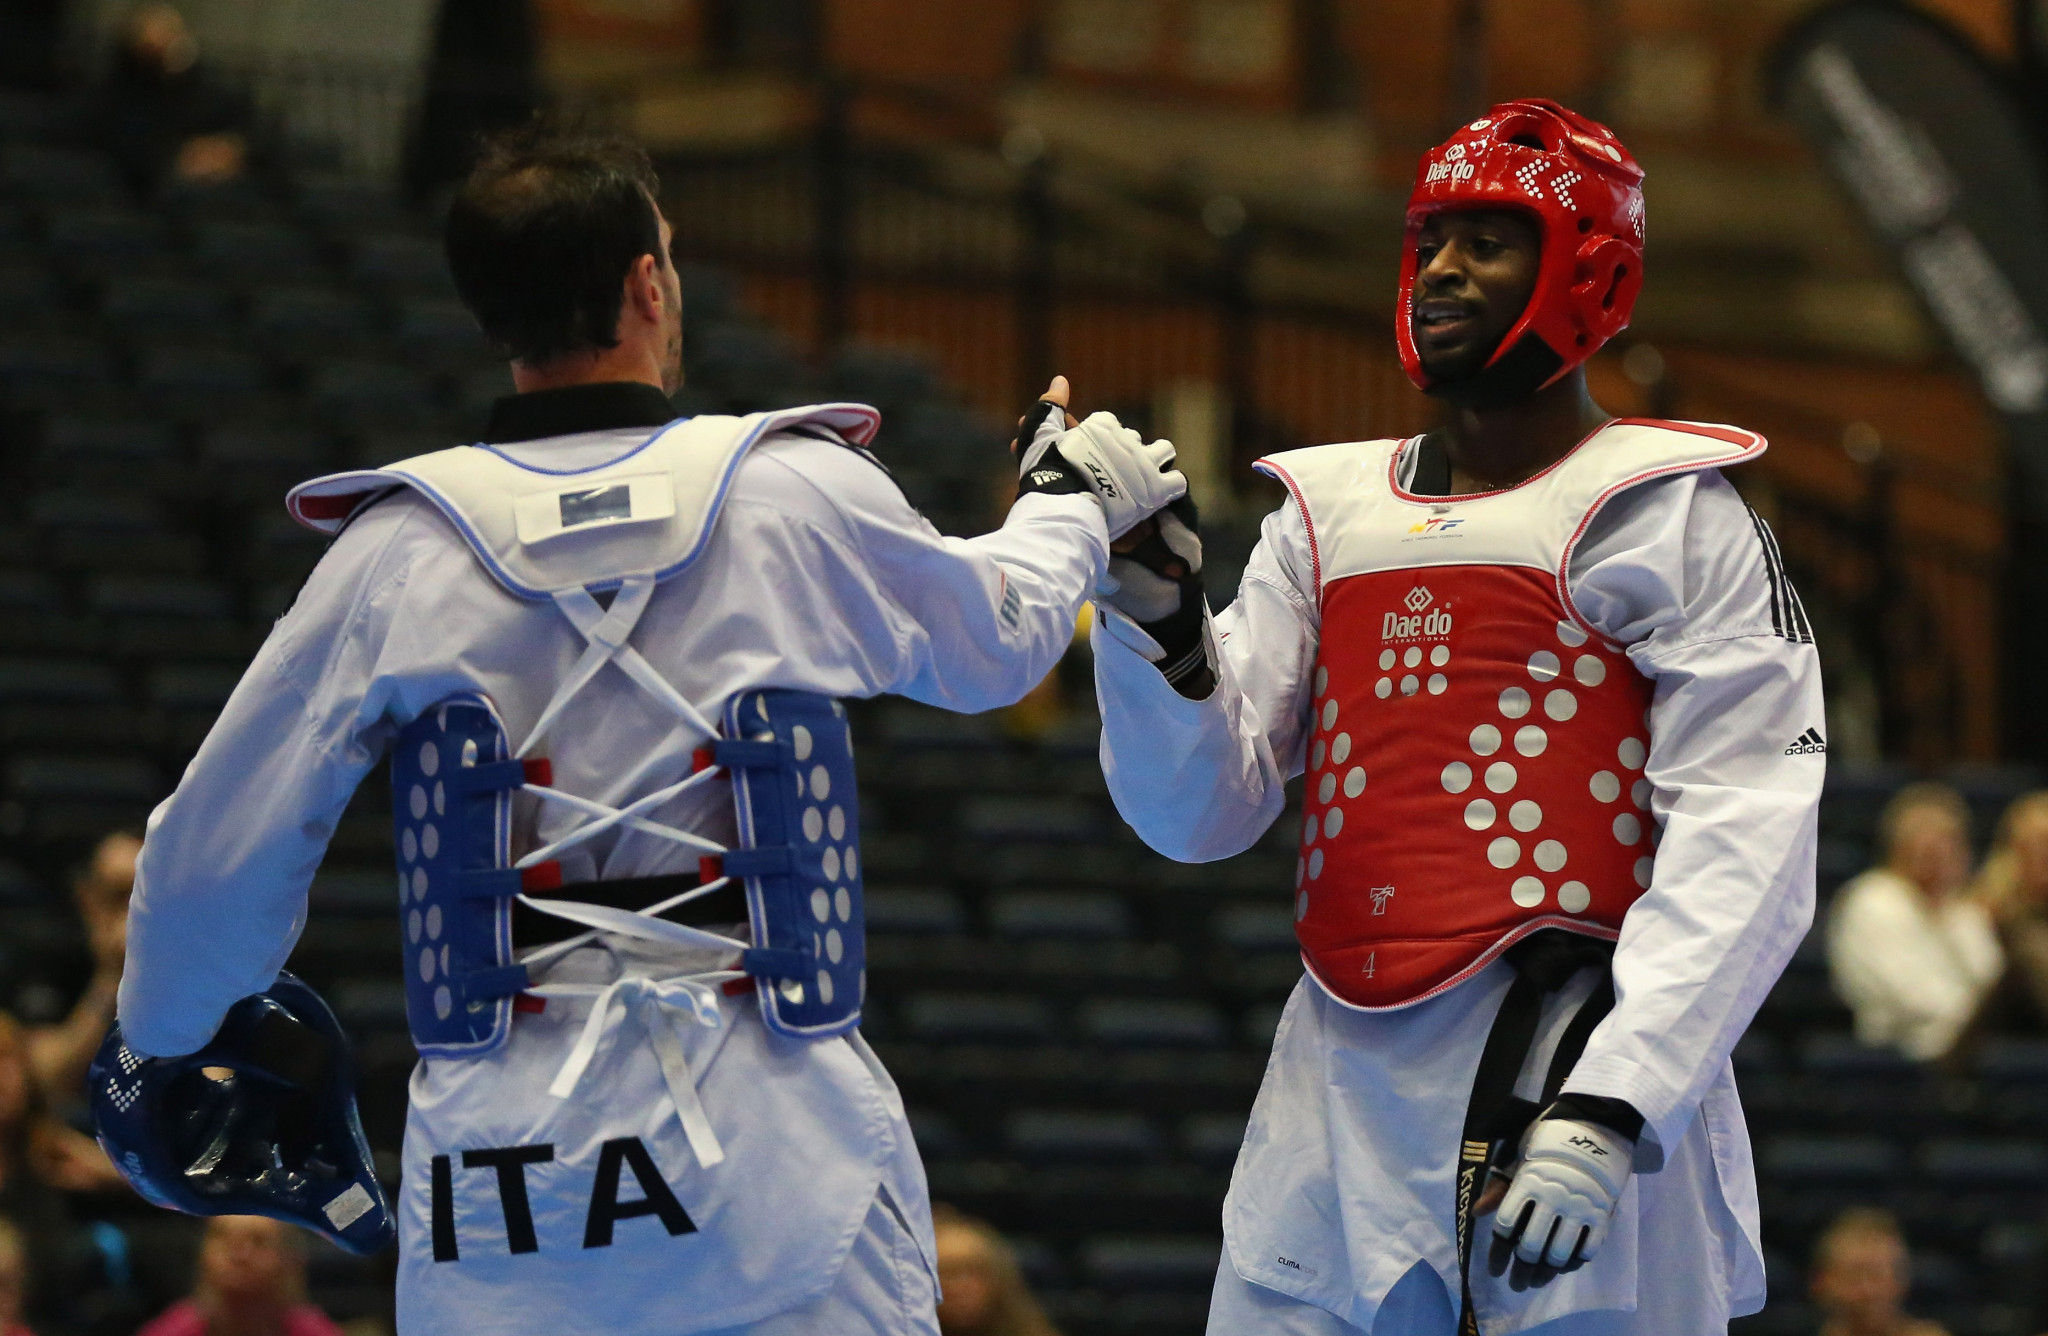 World Taekwondo works to contribute to the success of the Olympic Movement, and champions values such as education, friendship and fair play ©Getty Images